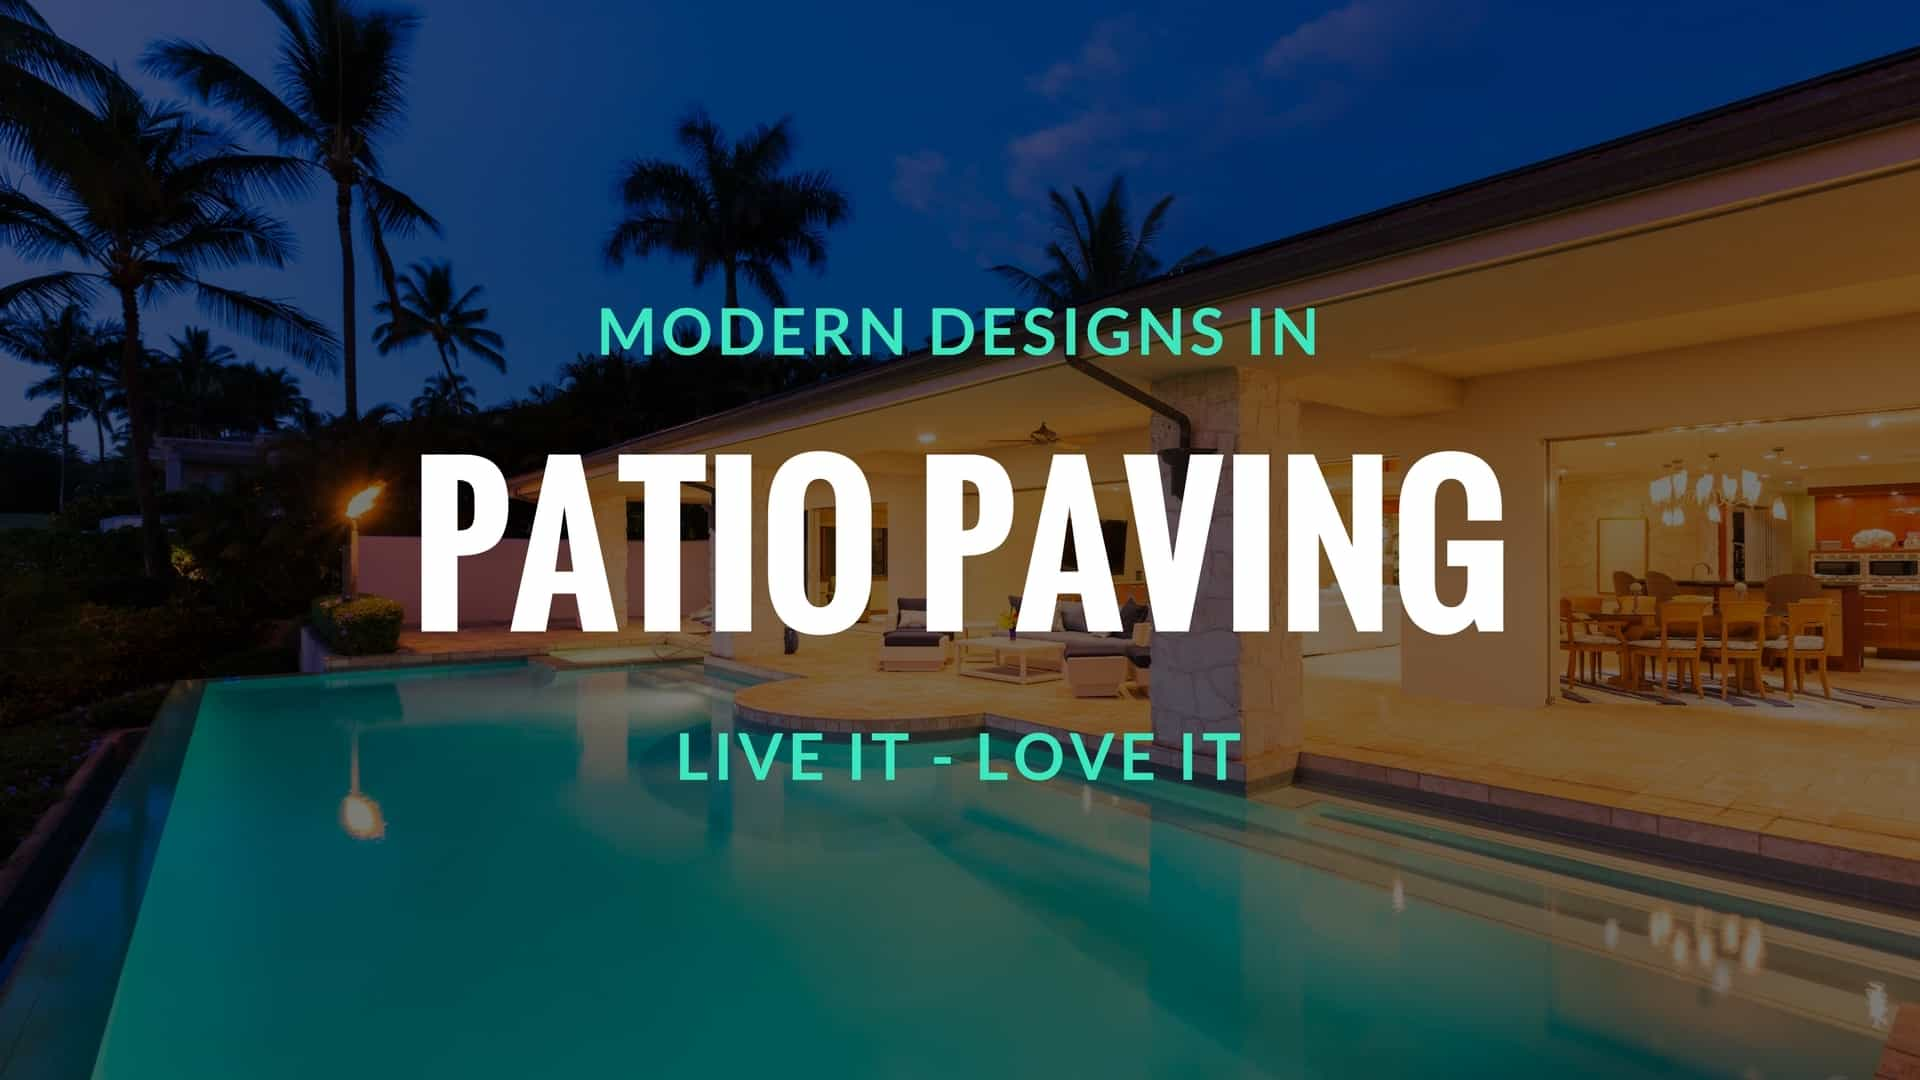 Patio Paving at Home